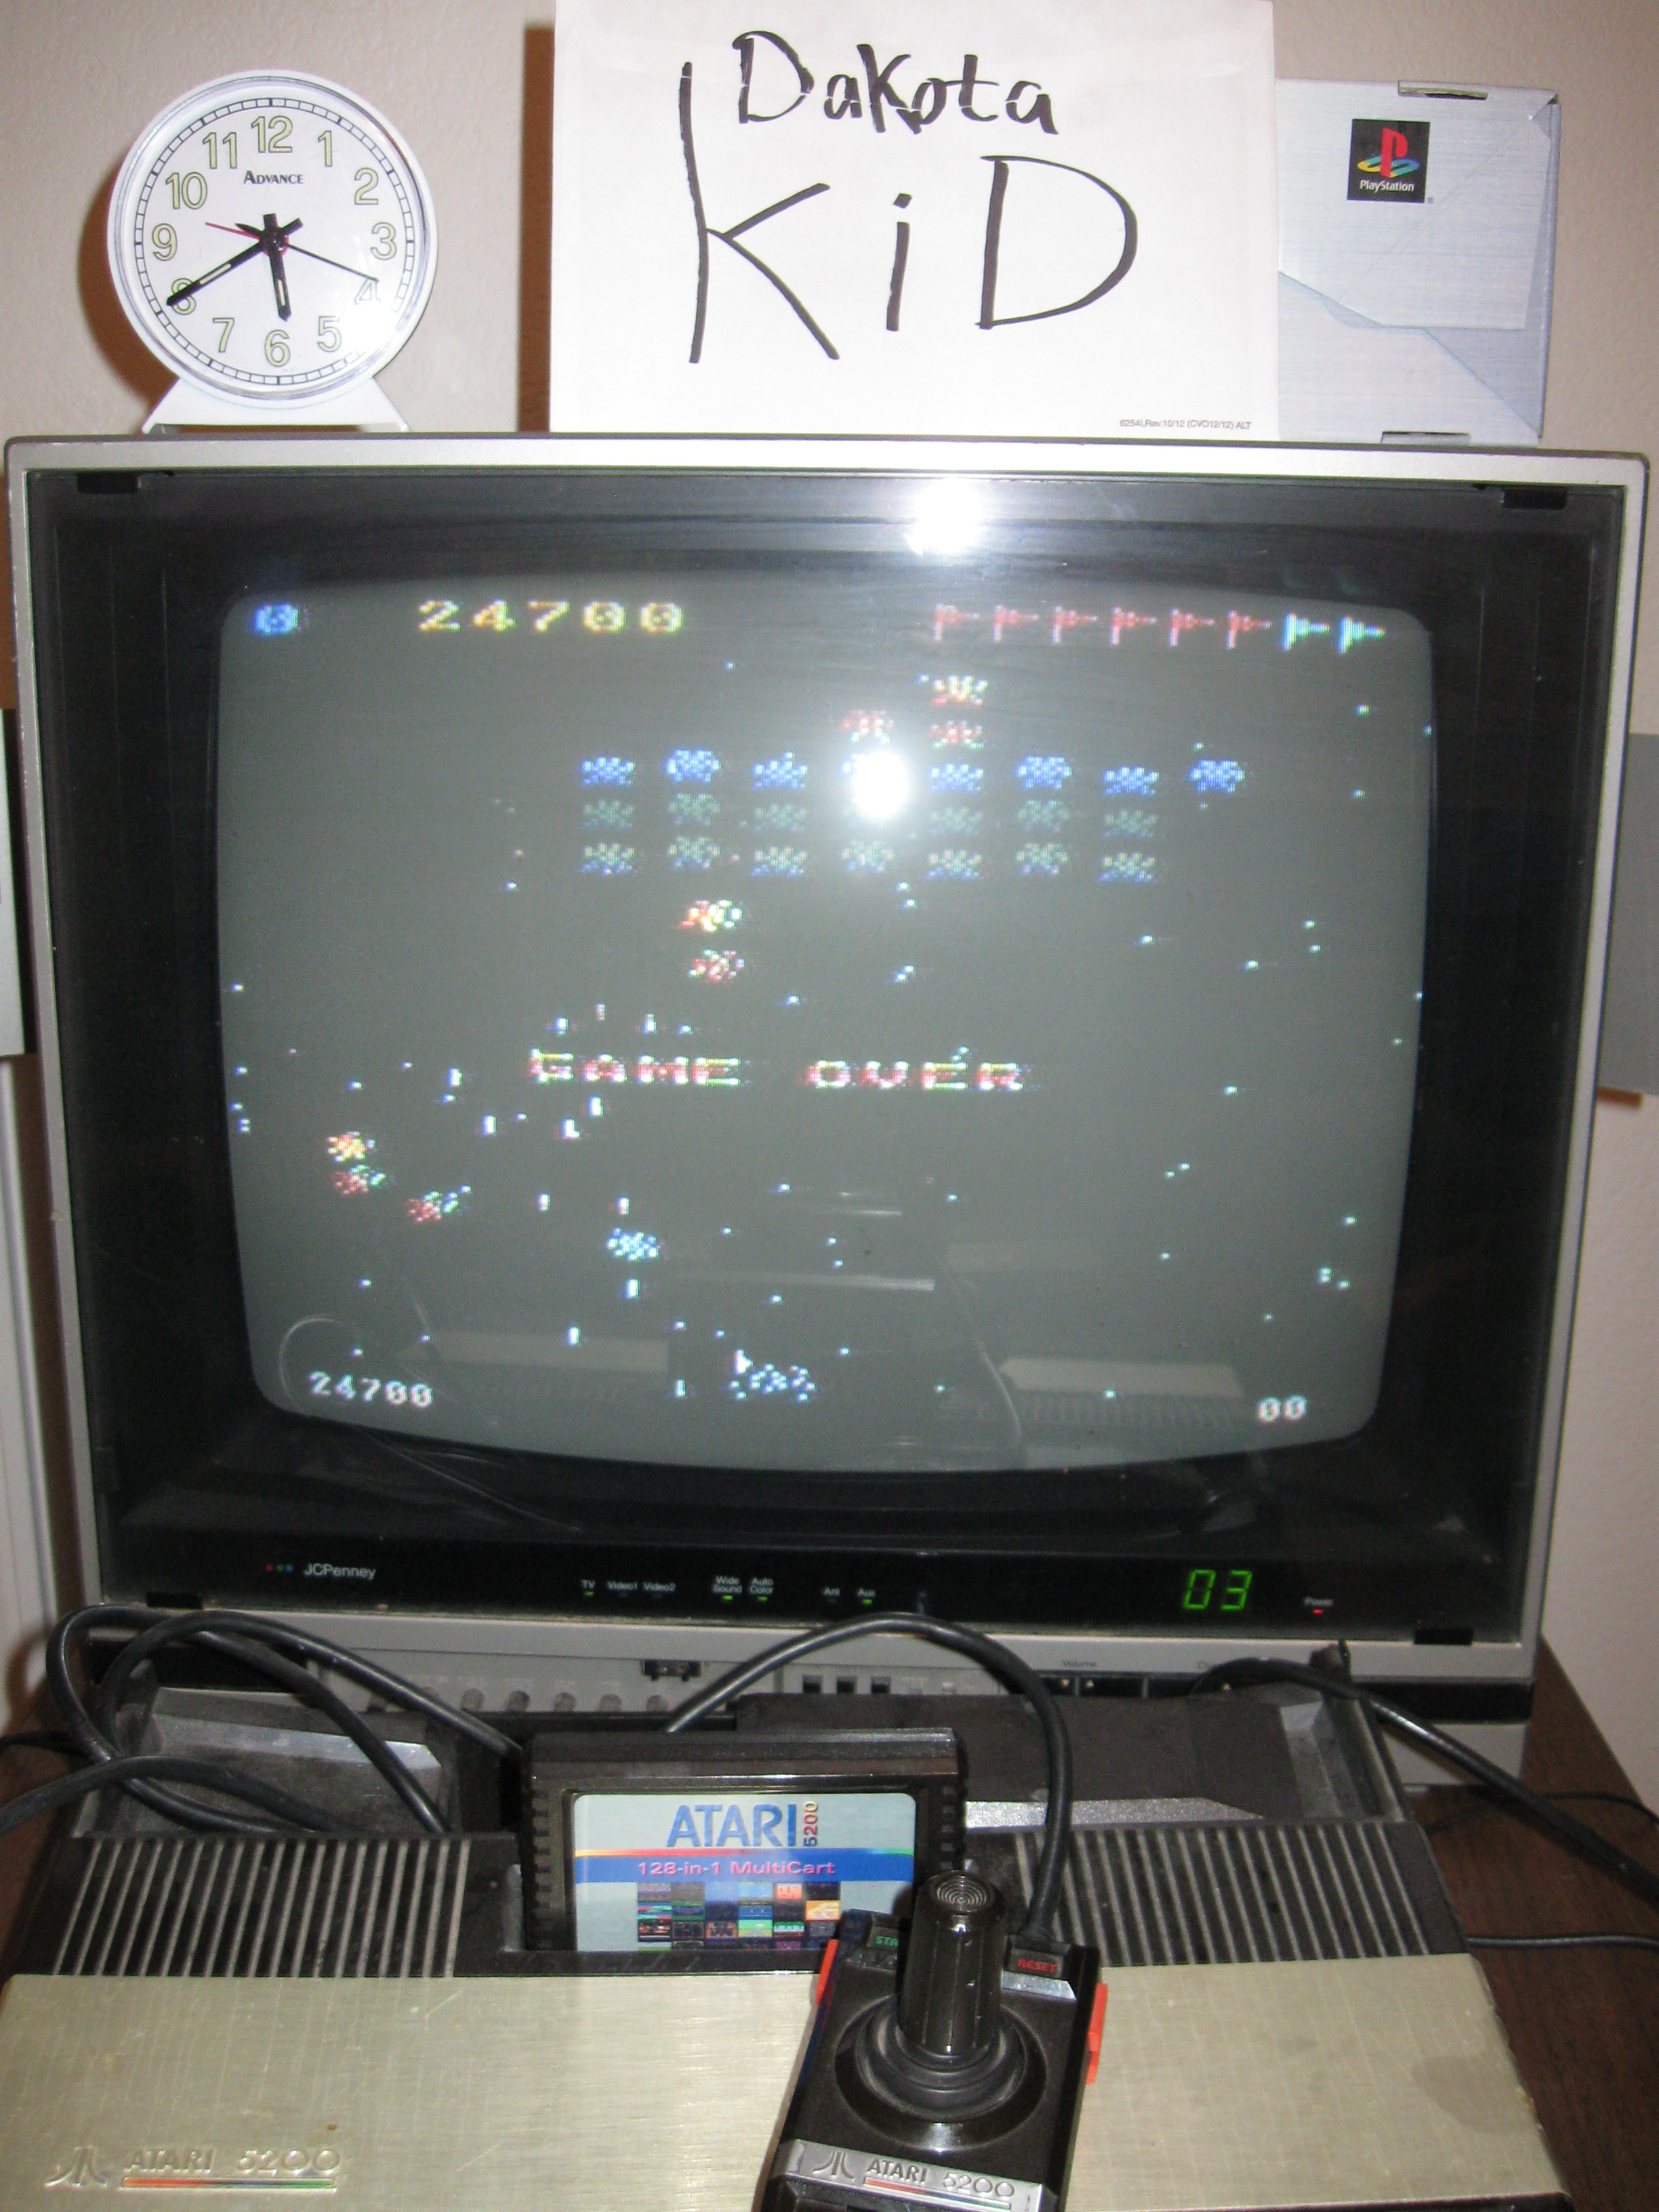 Galaxian: Skill Level 1 24,700 points